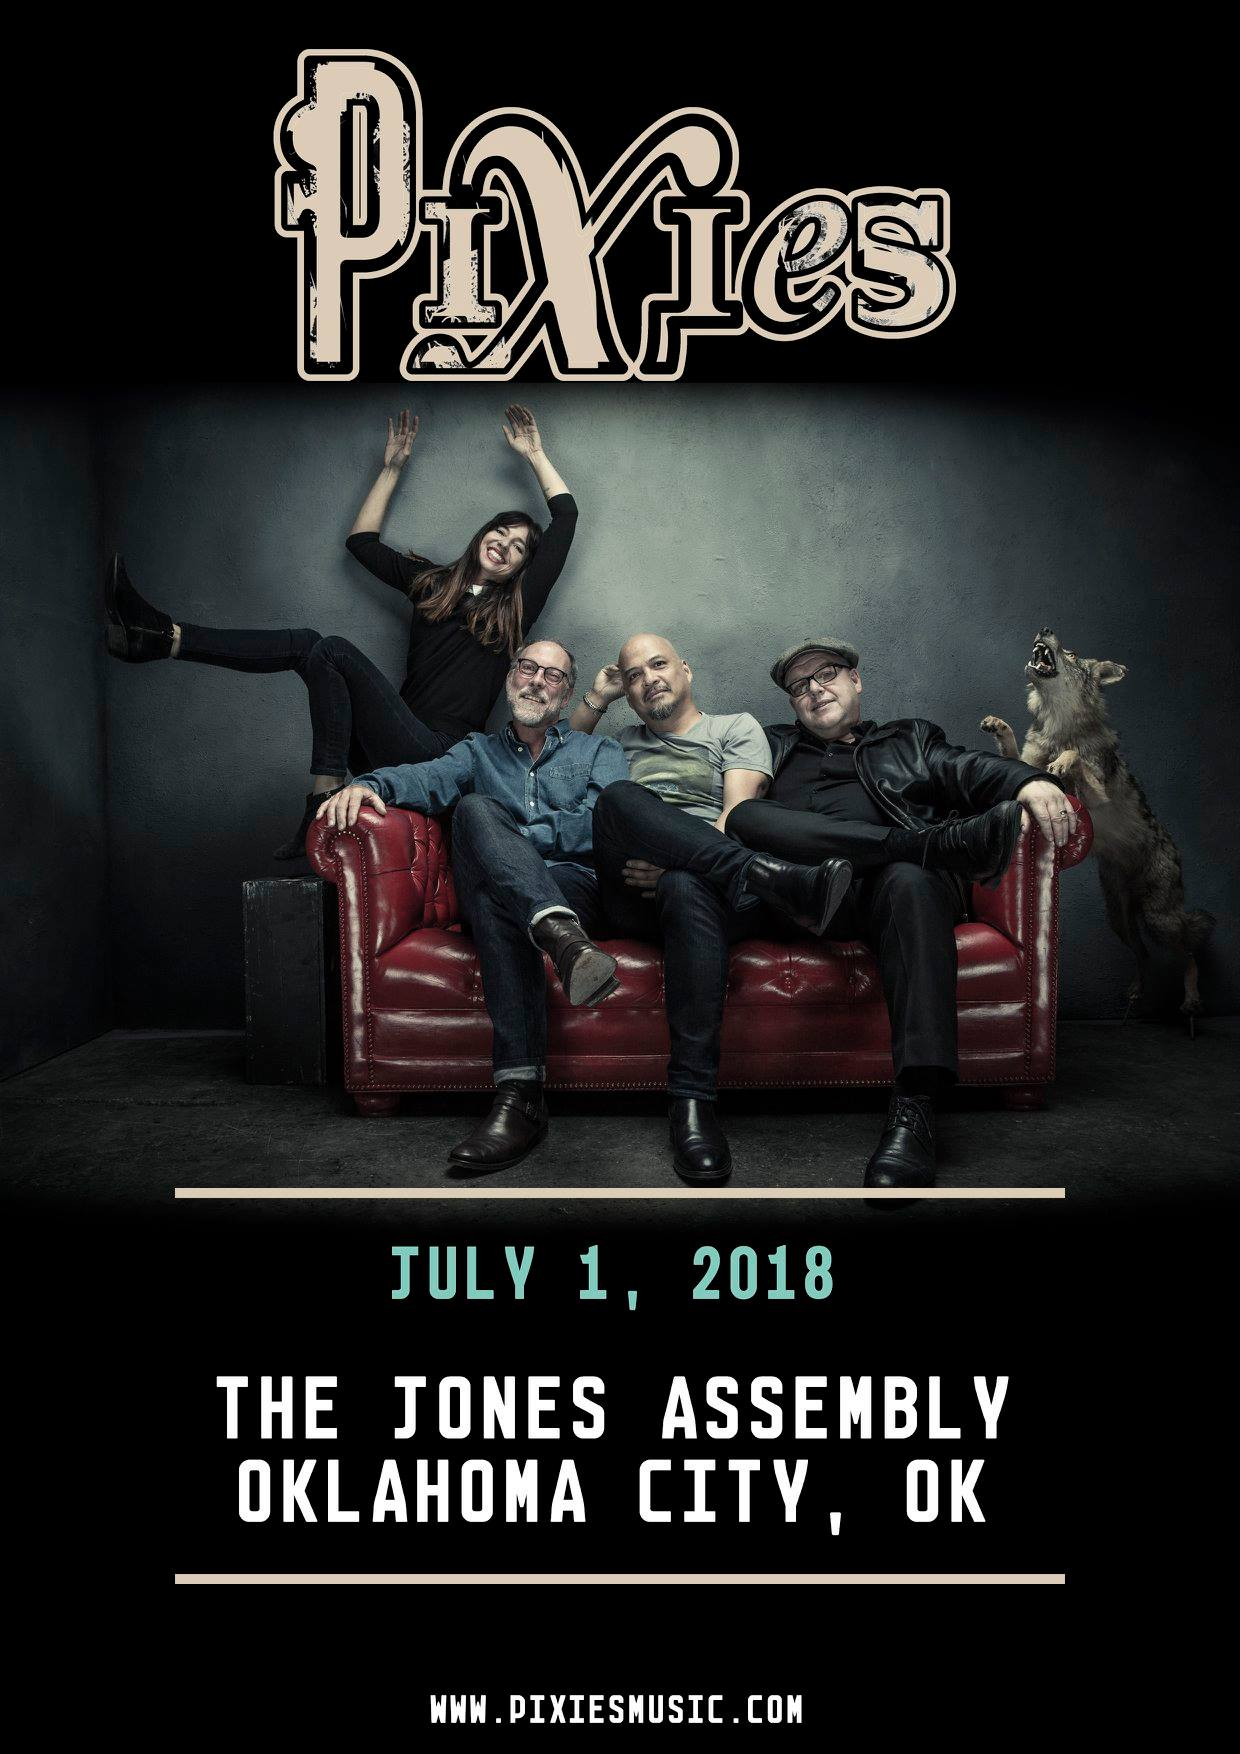 OKLAHOMA CITY, OK - we play @theJonesOKC on July 1st. Tickets are on-sale NOW at: https://t.co/NTOnjBD0Ao https://t.co/hom6tkpyRM